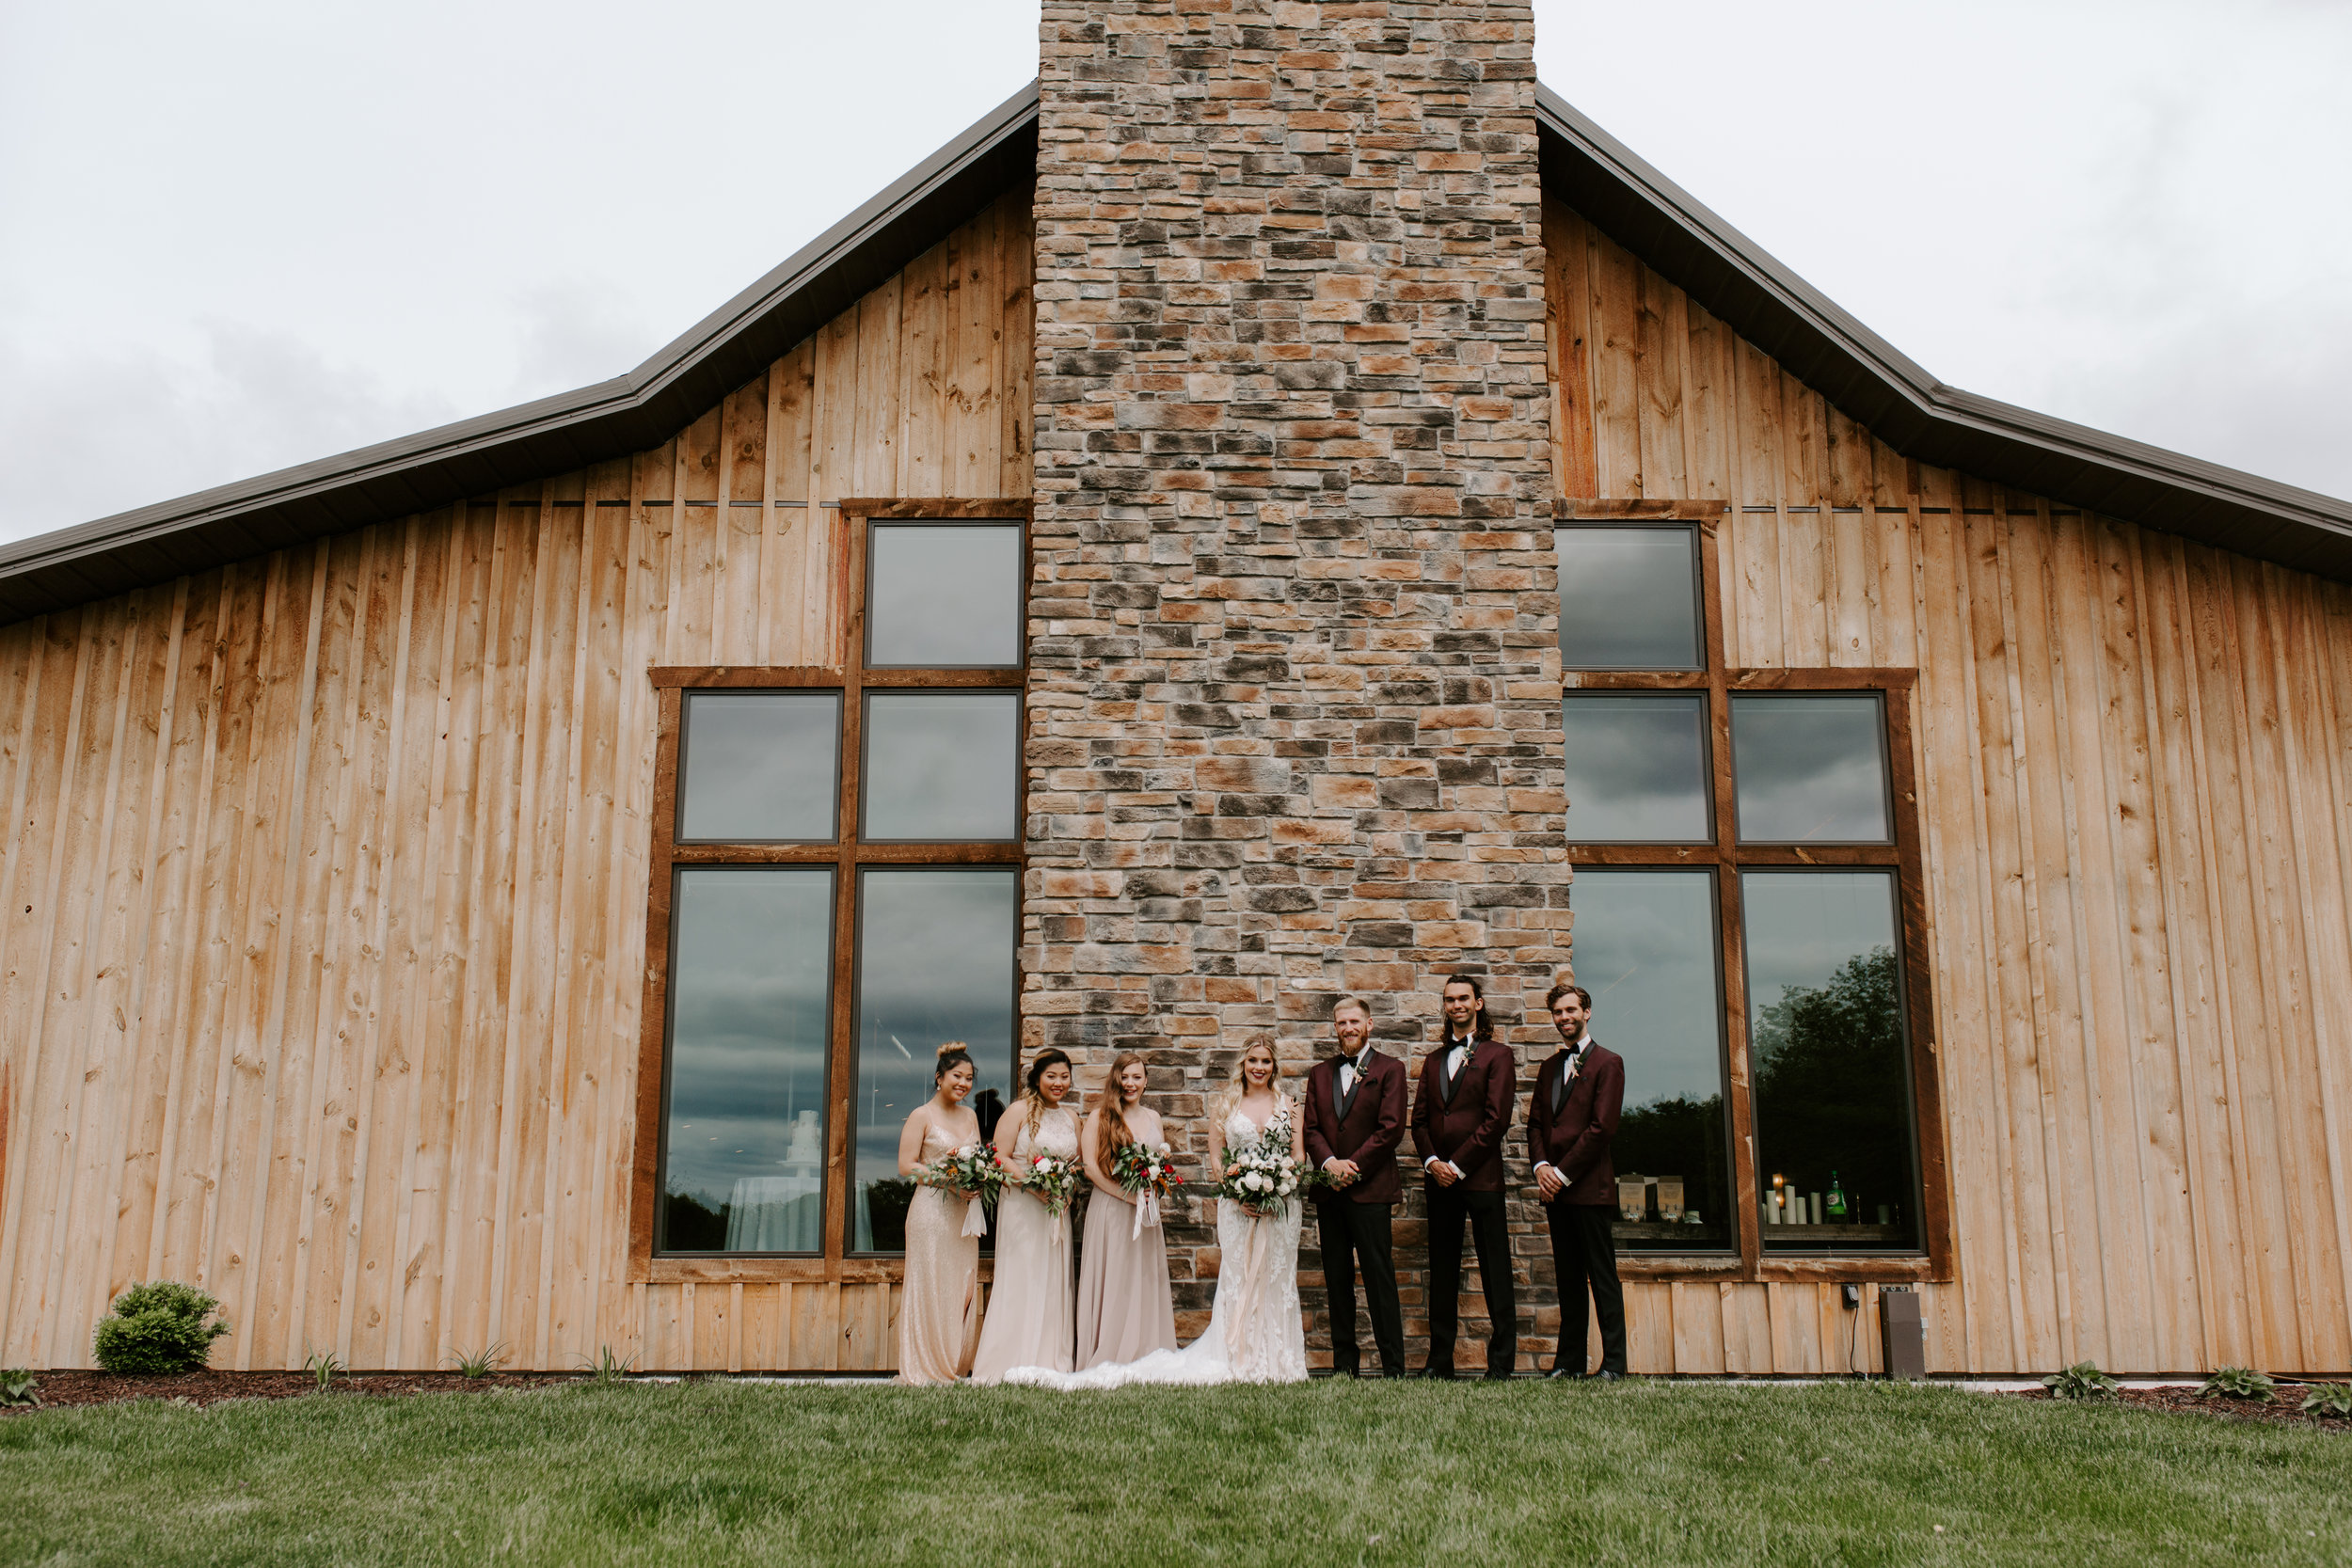 barn venue in Adel iowa for weddings and events, exterior chimney in brick shows behind wedding party posing in blush and cream dresses, with burgundy color tuxes